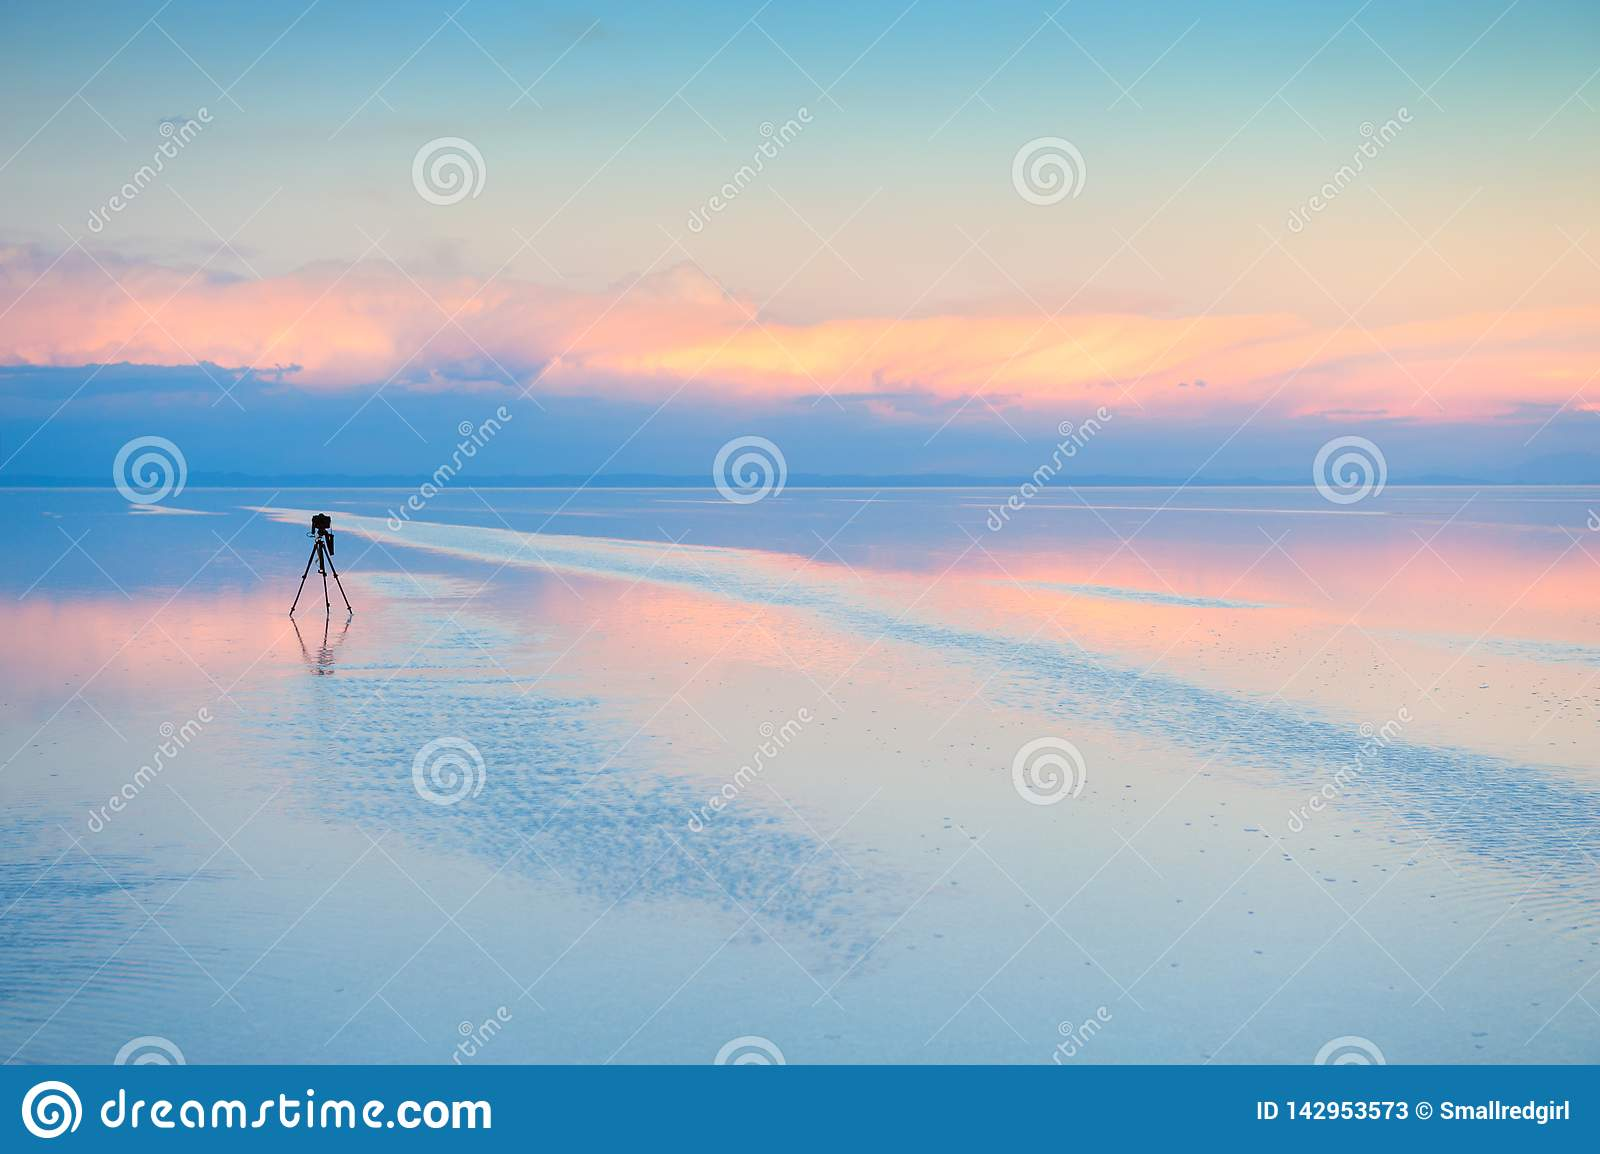 Camera with tripod shooting sunset on Salar De Uyuni salt flat in Bolivia